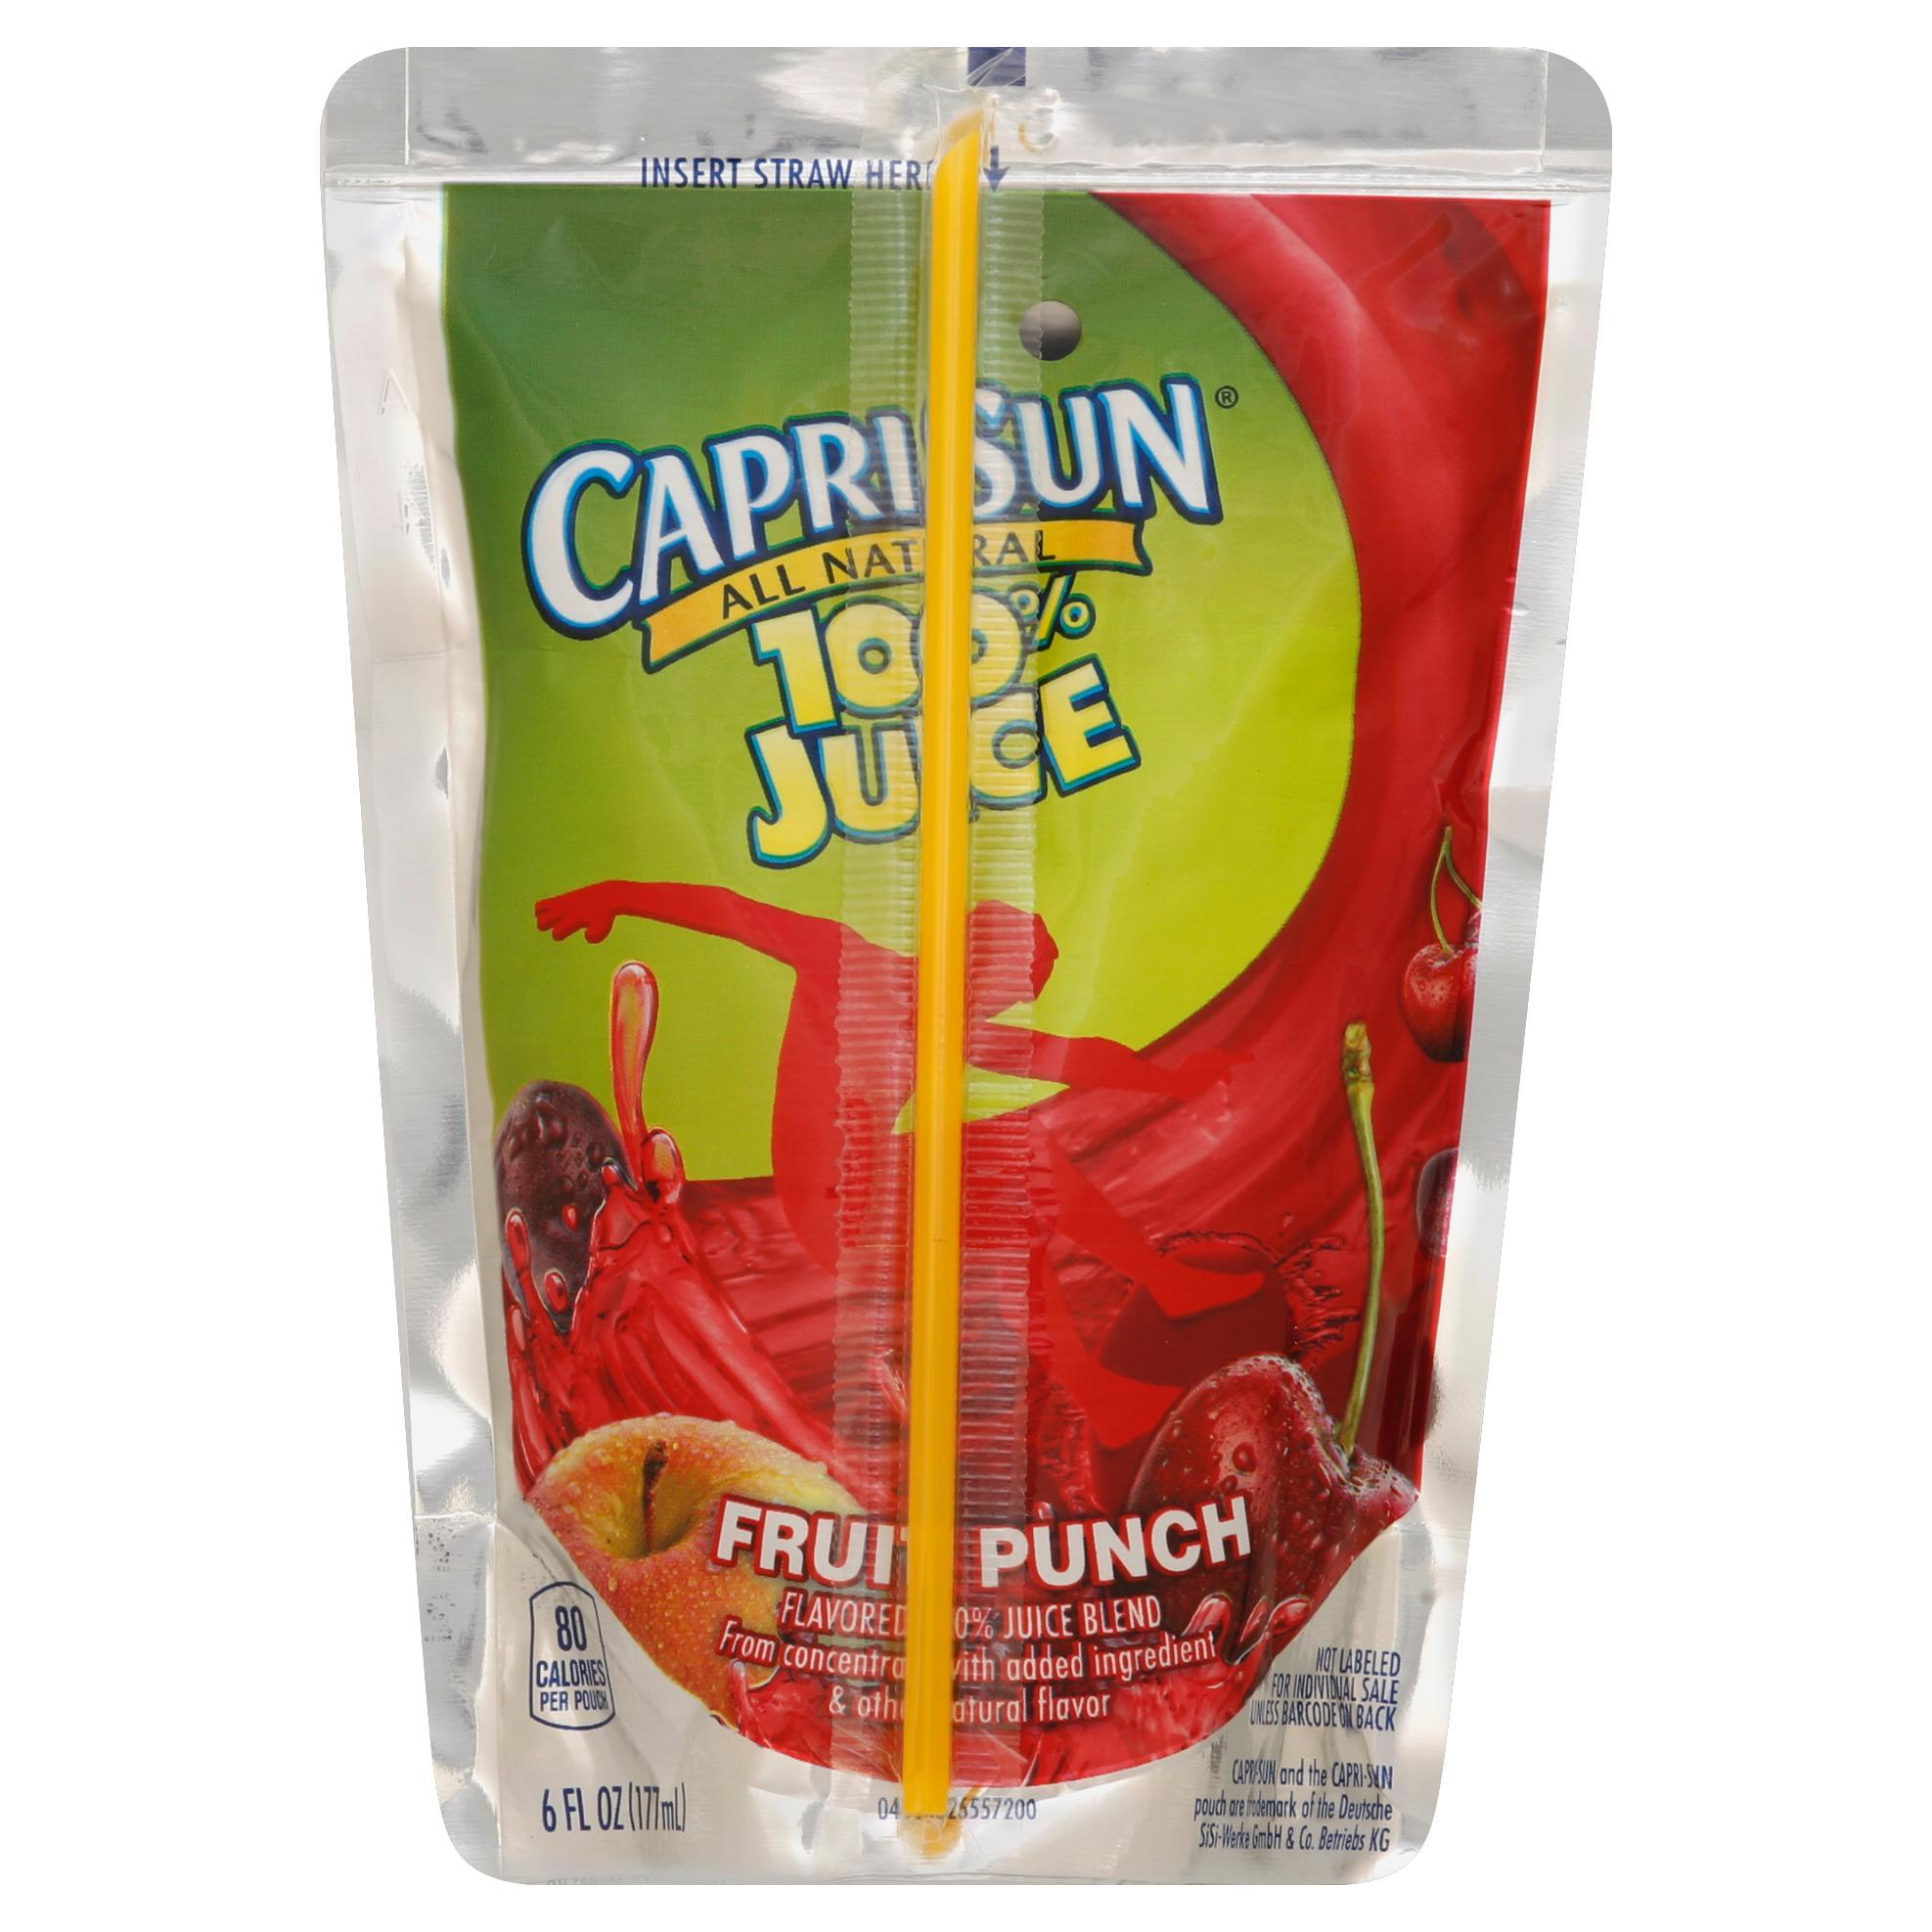 Capri Sun 100% Juice - Fruit Punch, 6 oz.